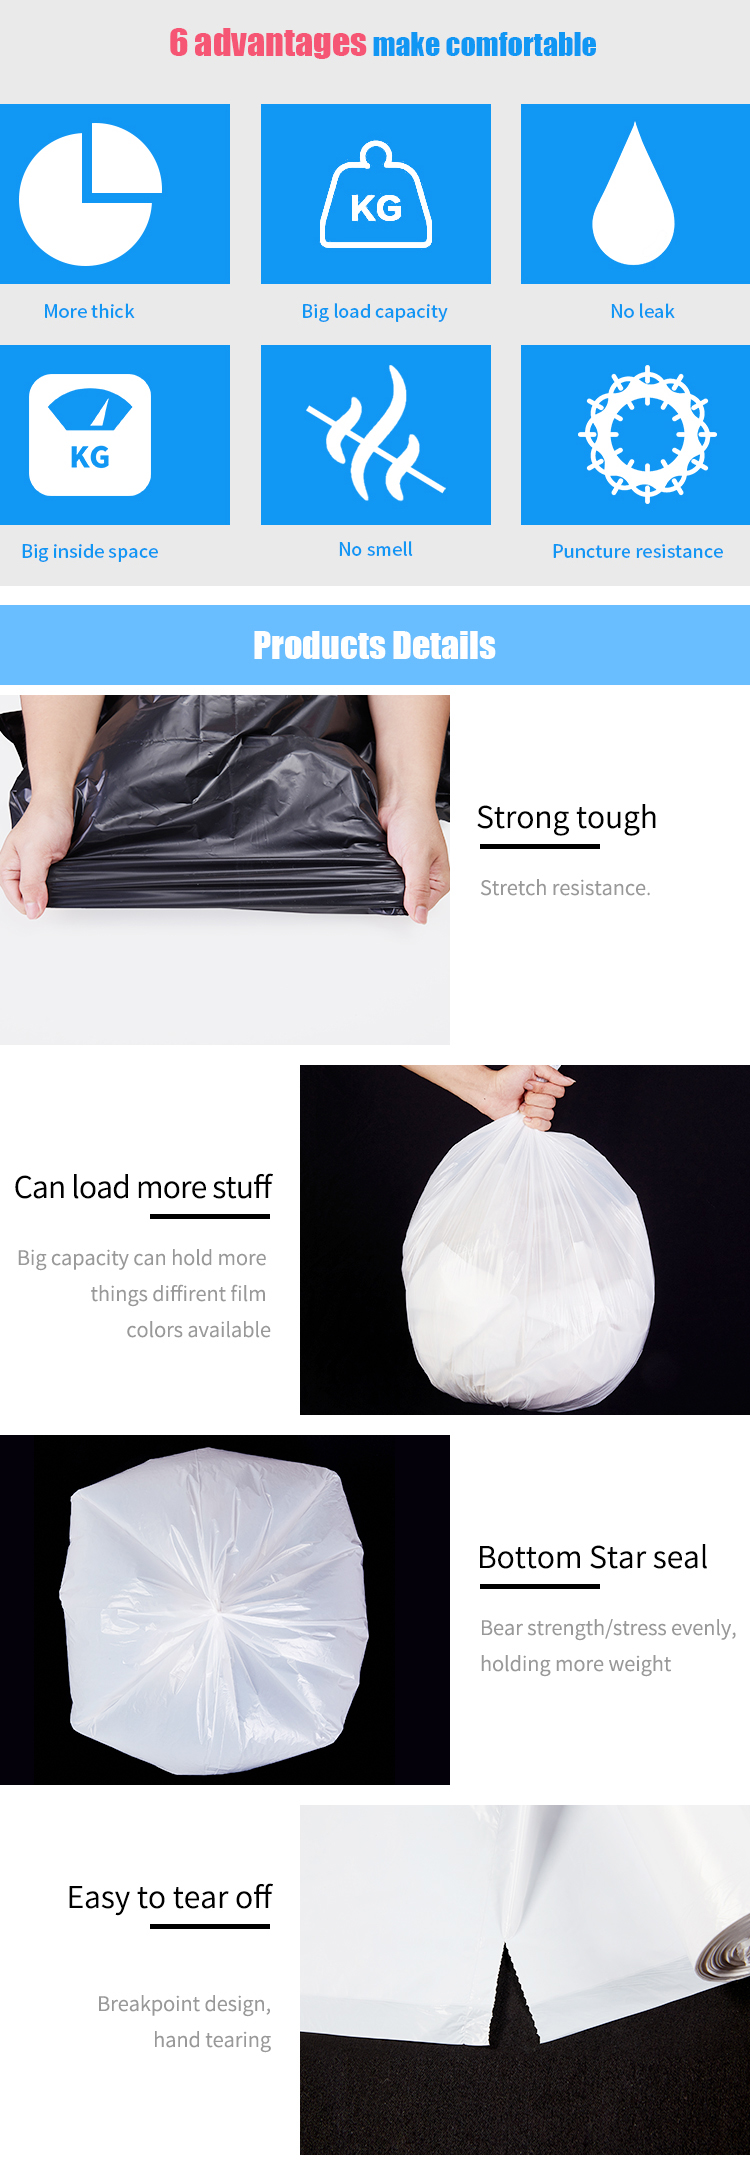 China Supplier Eco Friendly Biodegradable Plastic Bags at Wholesale Price